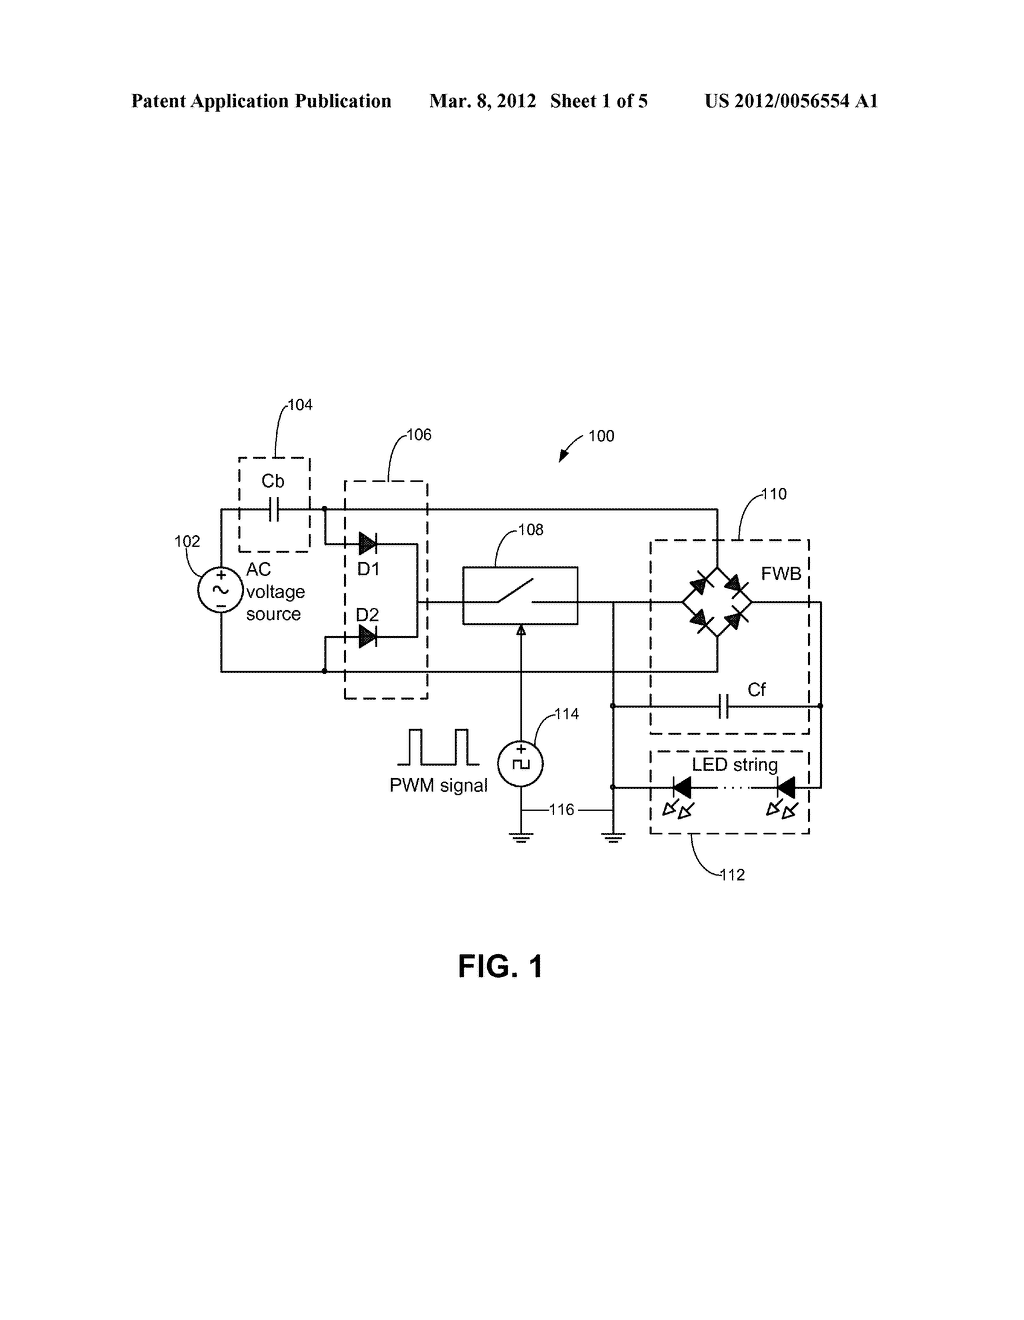 Solid State Light Source Driving and Dimming Using an AC Voltage Source - diagram, schematic, and image 02